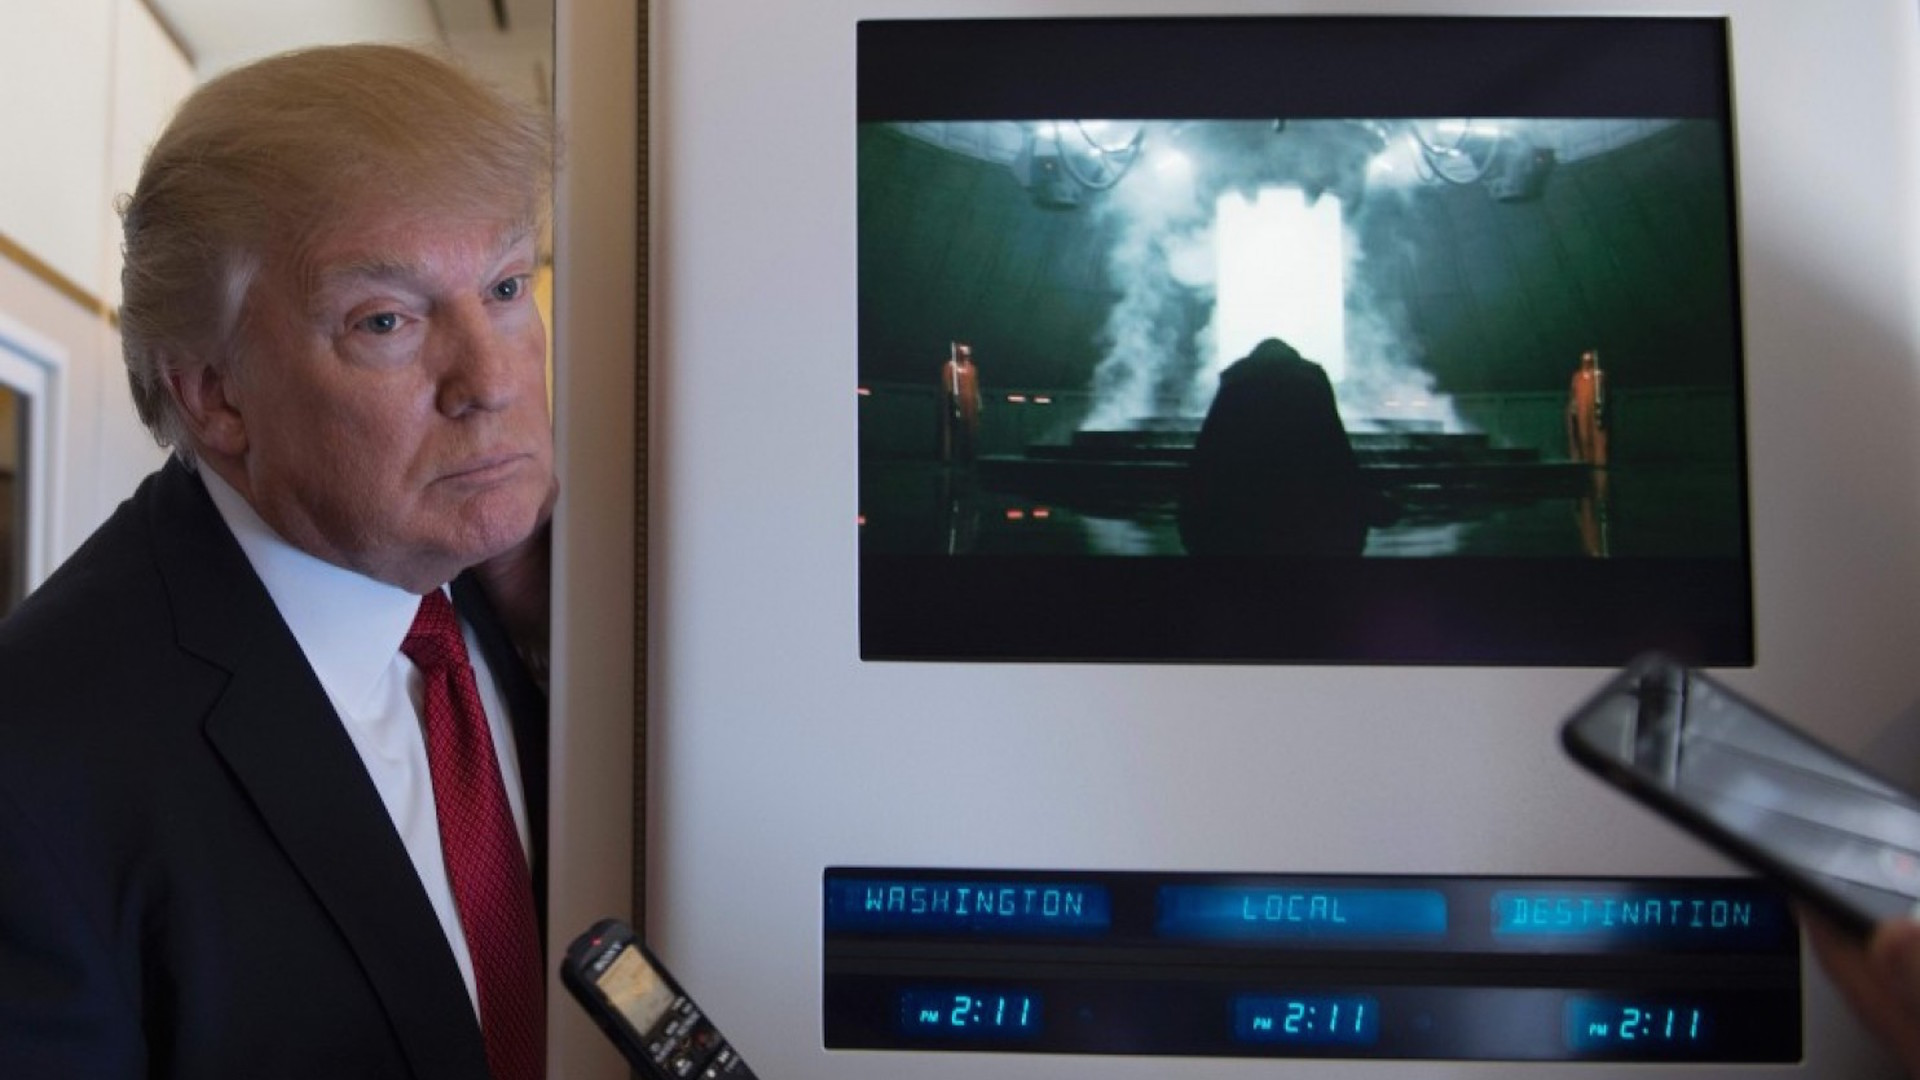 Rogue One A Star Wars Story Plays As Trump Answers Questions Aboard Air Force One The Washington Post